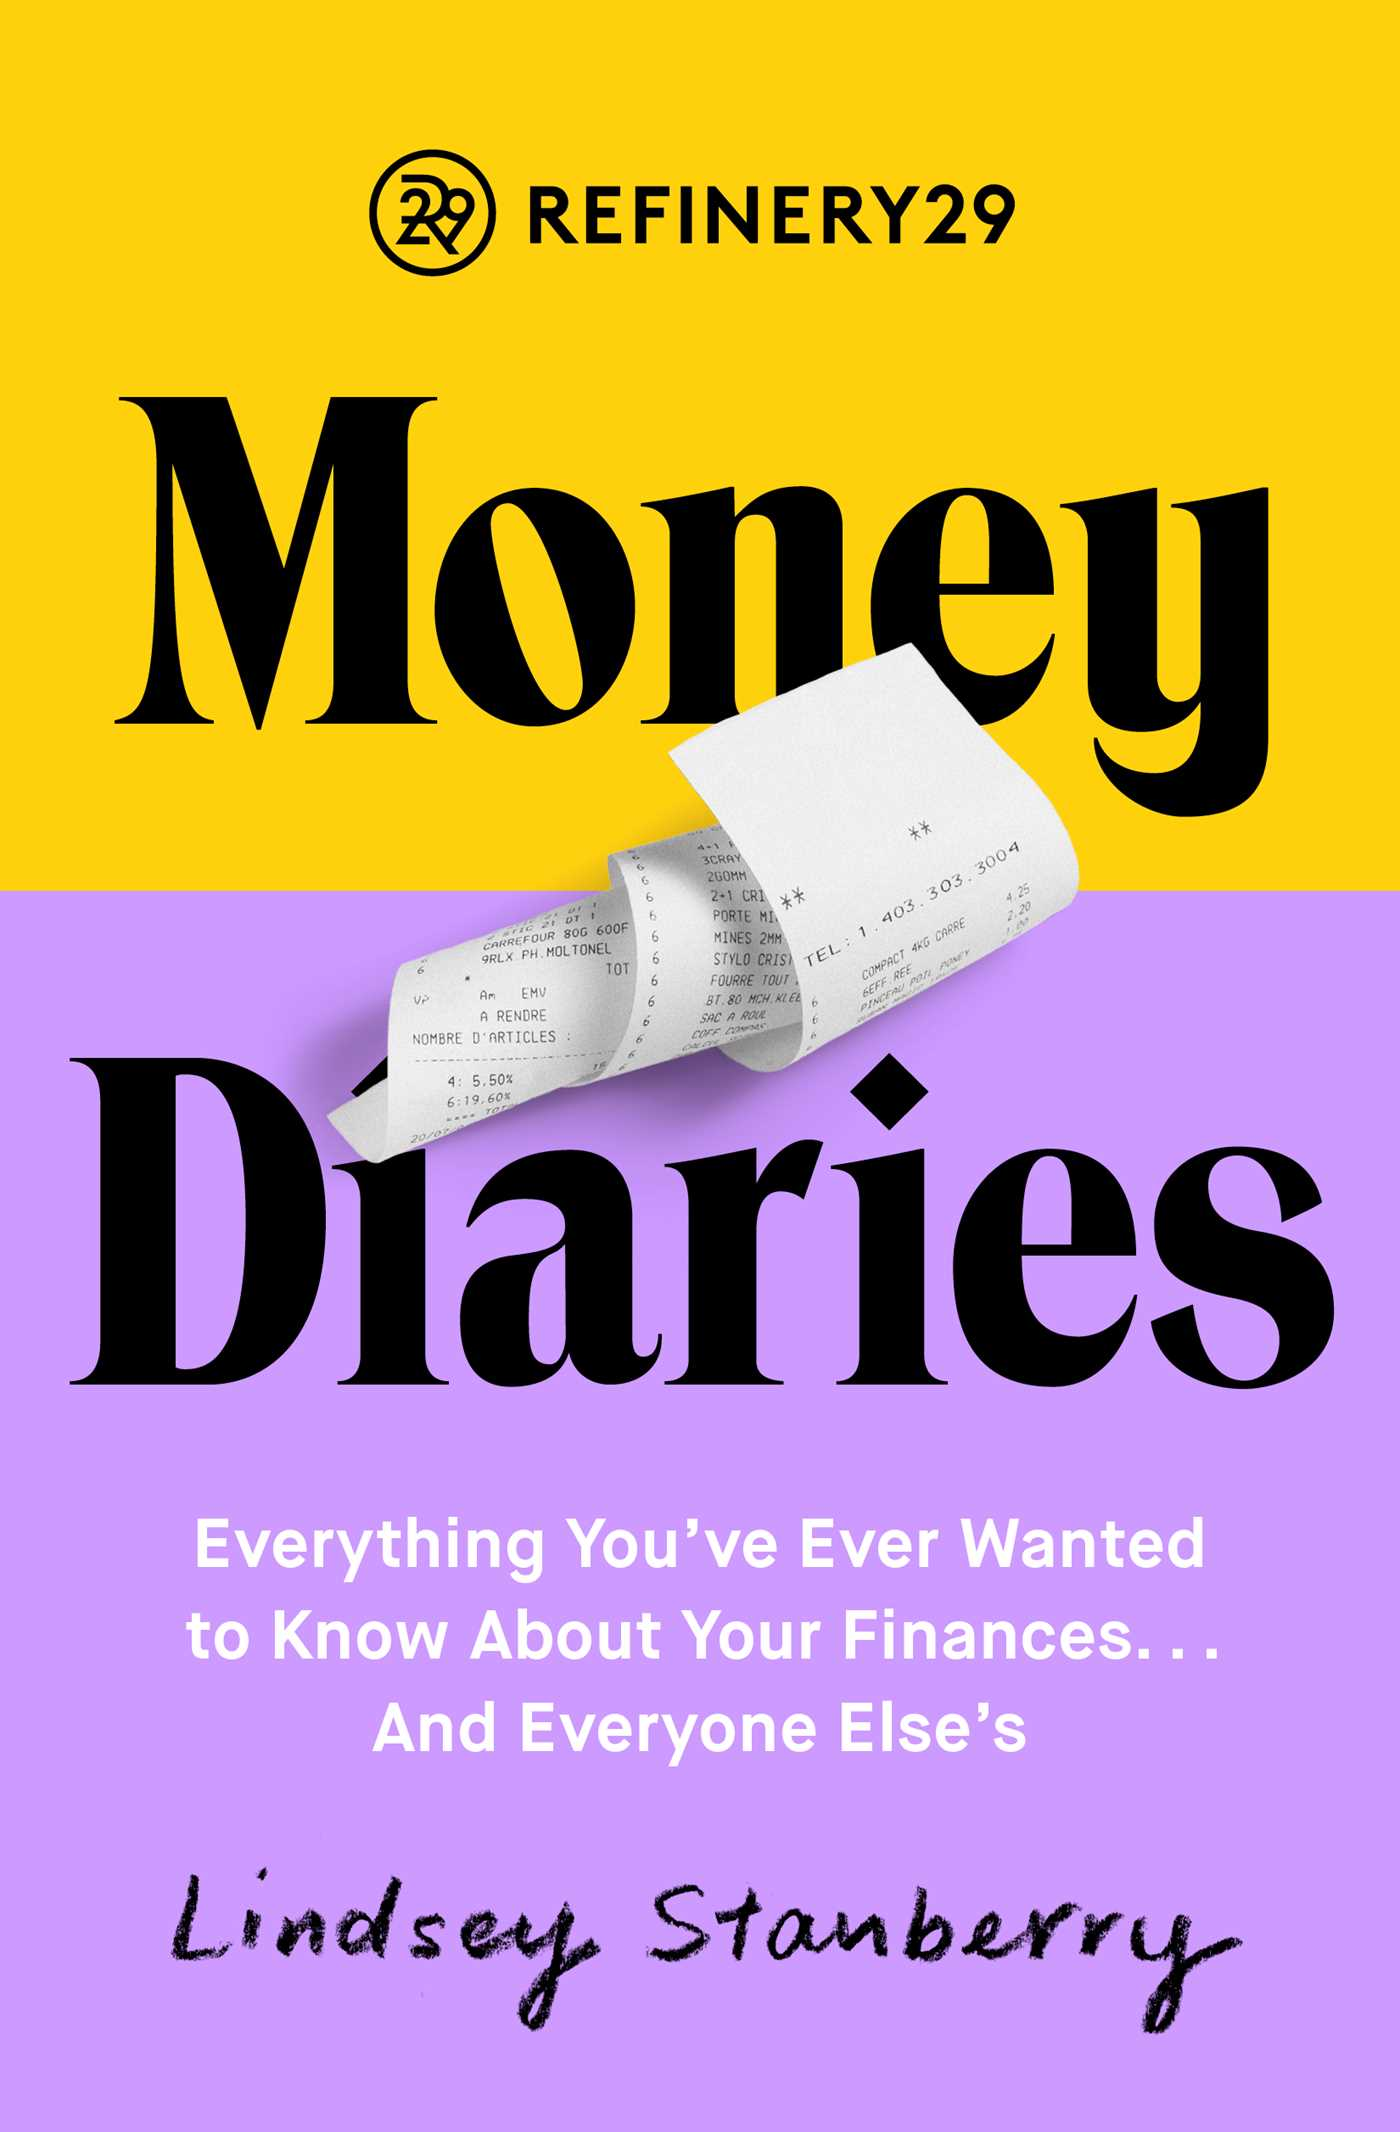 Refinery29 money diaries 9781501197994 hr